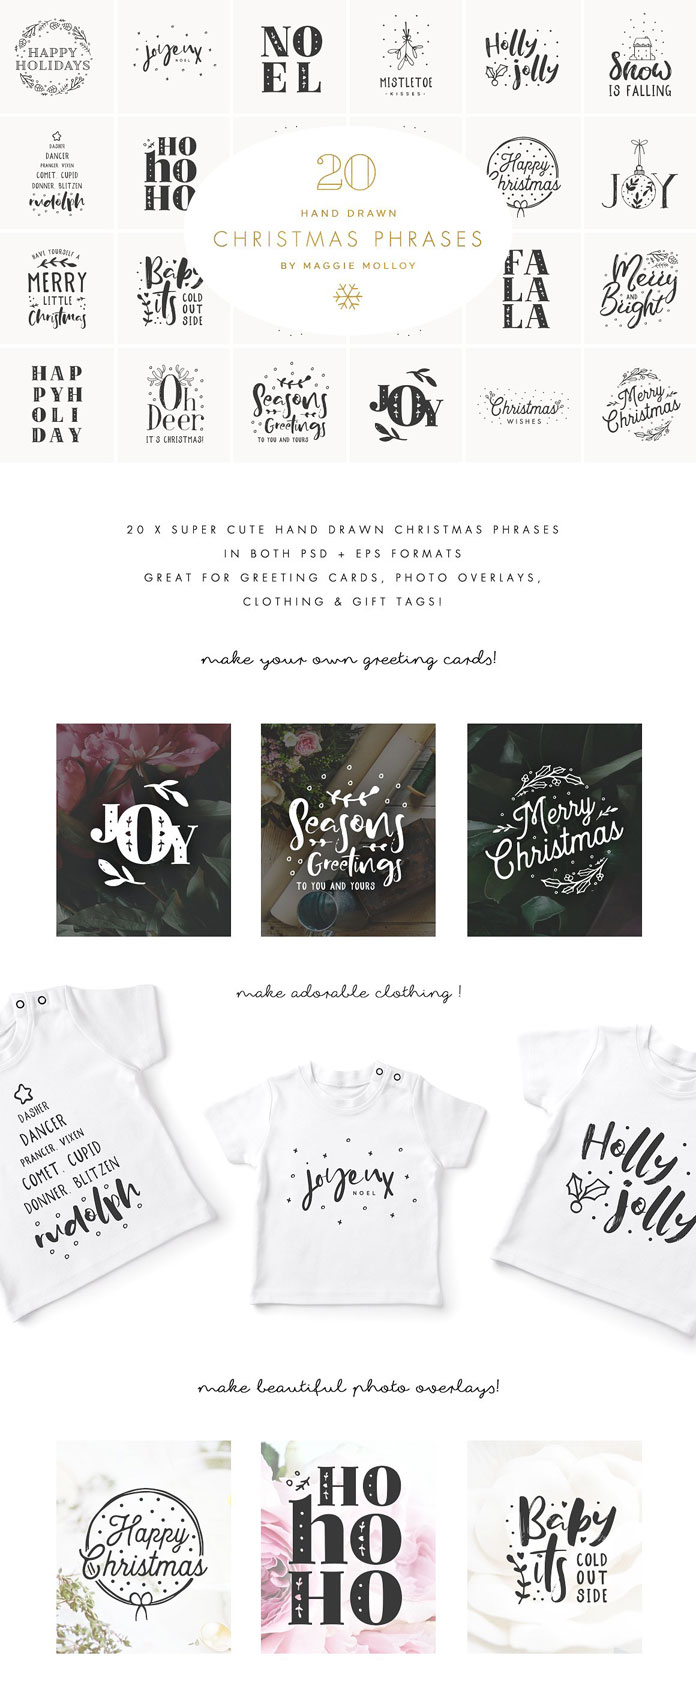 Hand-drawn Christmas graphics as EPS and PSD files.